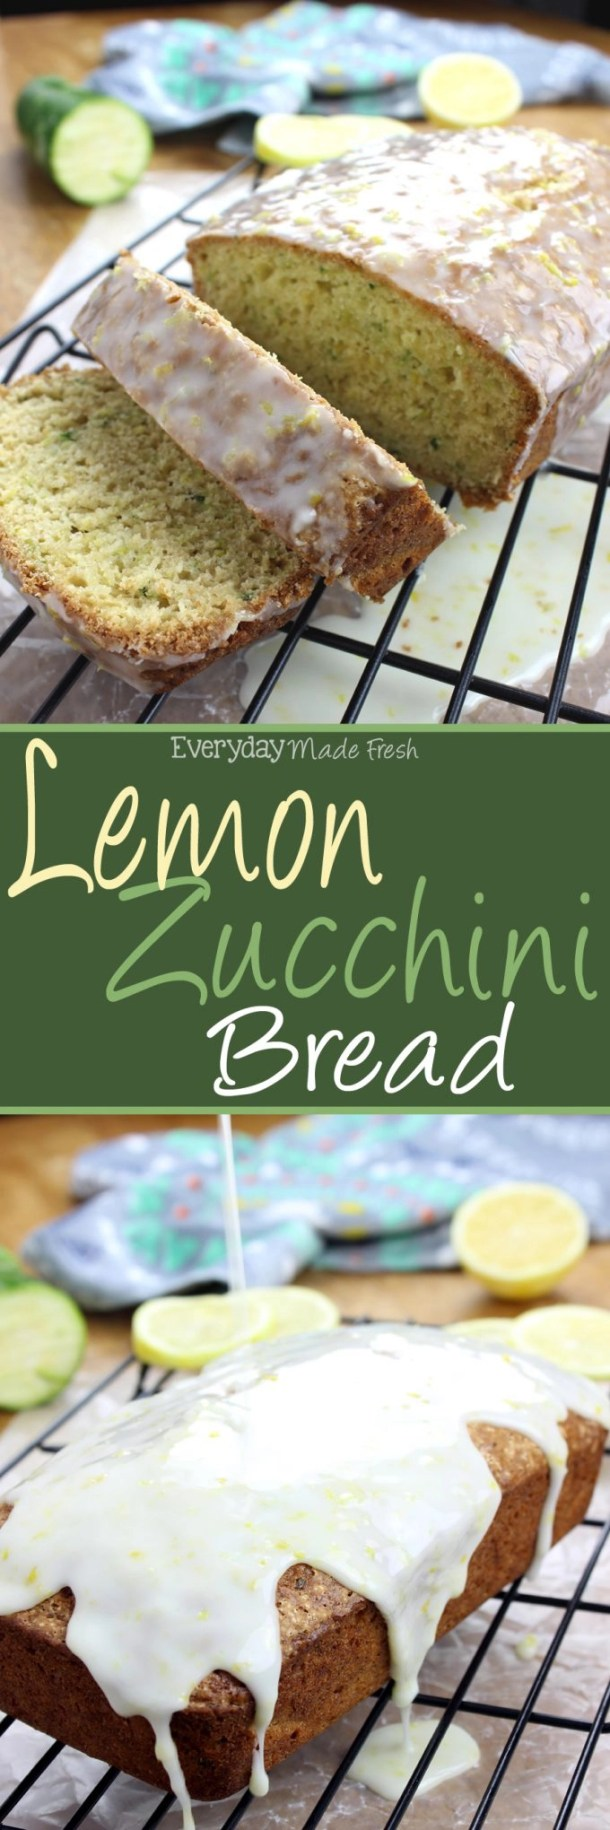 This simple Lemon Zucchini Bread is made with lemon zest and fresh zucchini, perfect for any lover of lemon. | EverydayMadeFresh.com